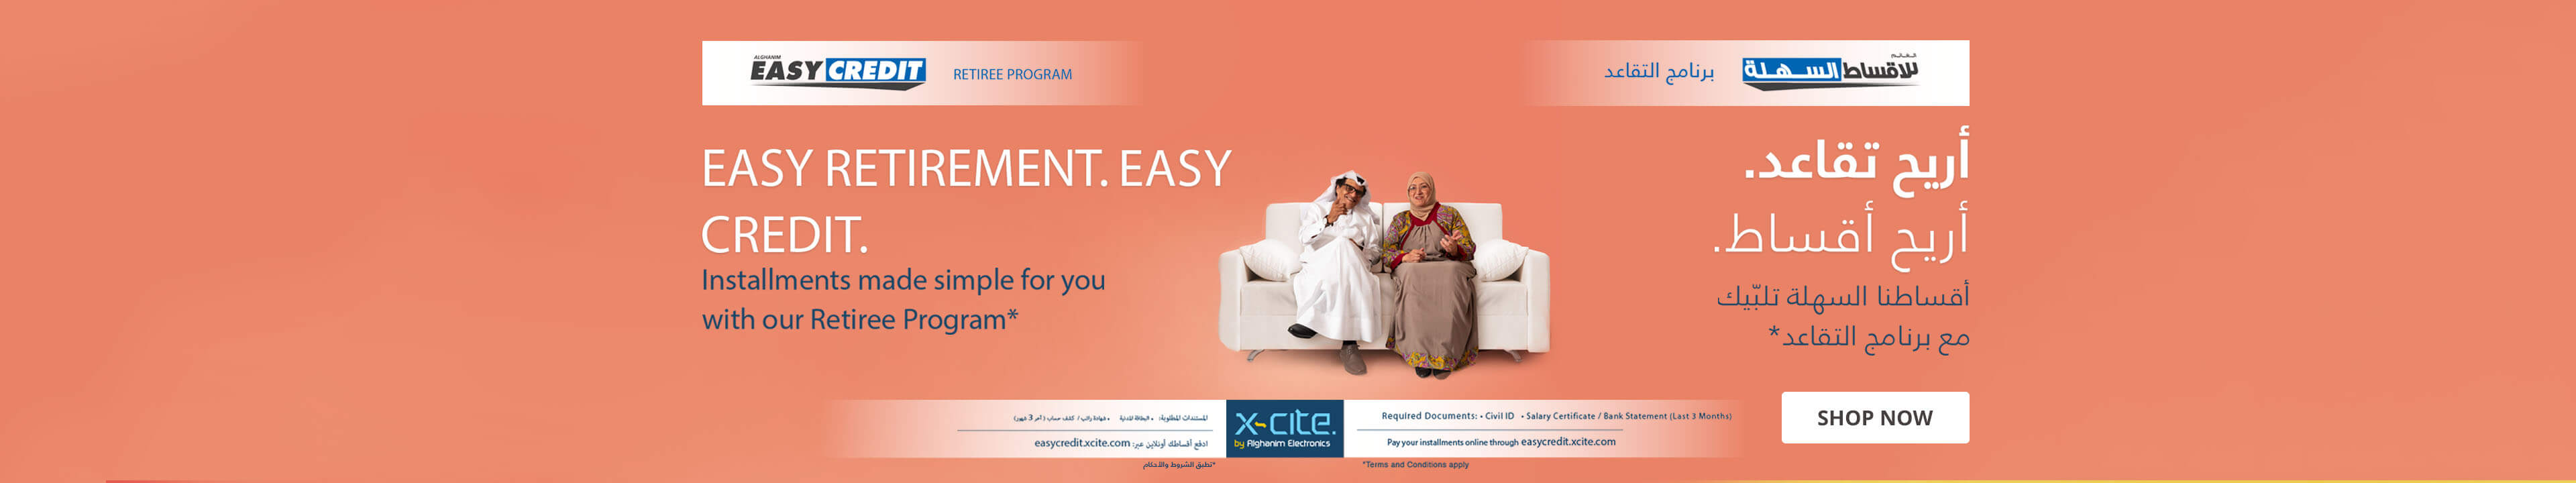 Alghanim Easy Credit on home kitchen, home mirrors, home roof systems, home furnishings, home design, home sofa sleepers, home funeral services, home garden trees, home walls, home countertops, home bed, home decor, home appliances, home couch, home upholstery fabric, home garden ideas, home cell phones, home windows, home art collection, home health,